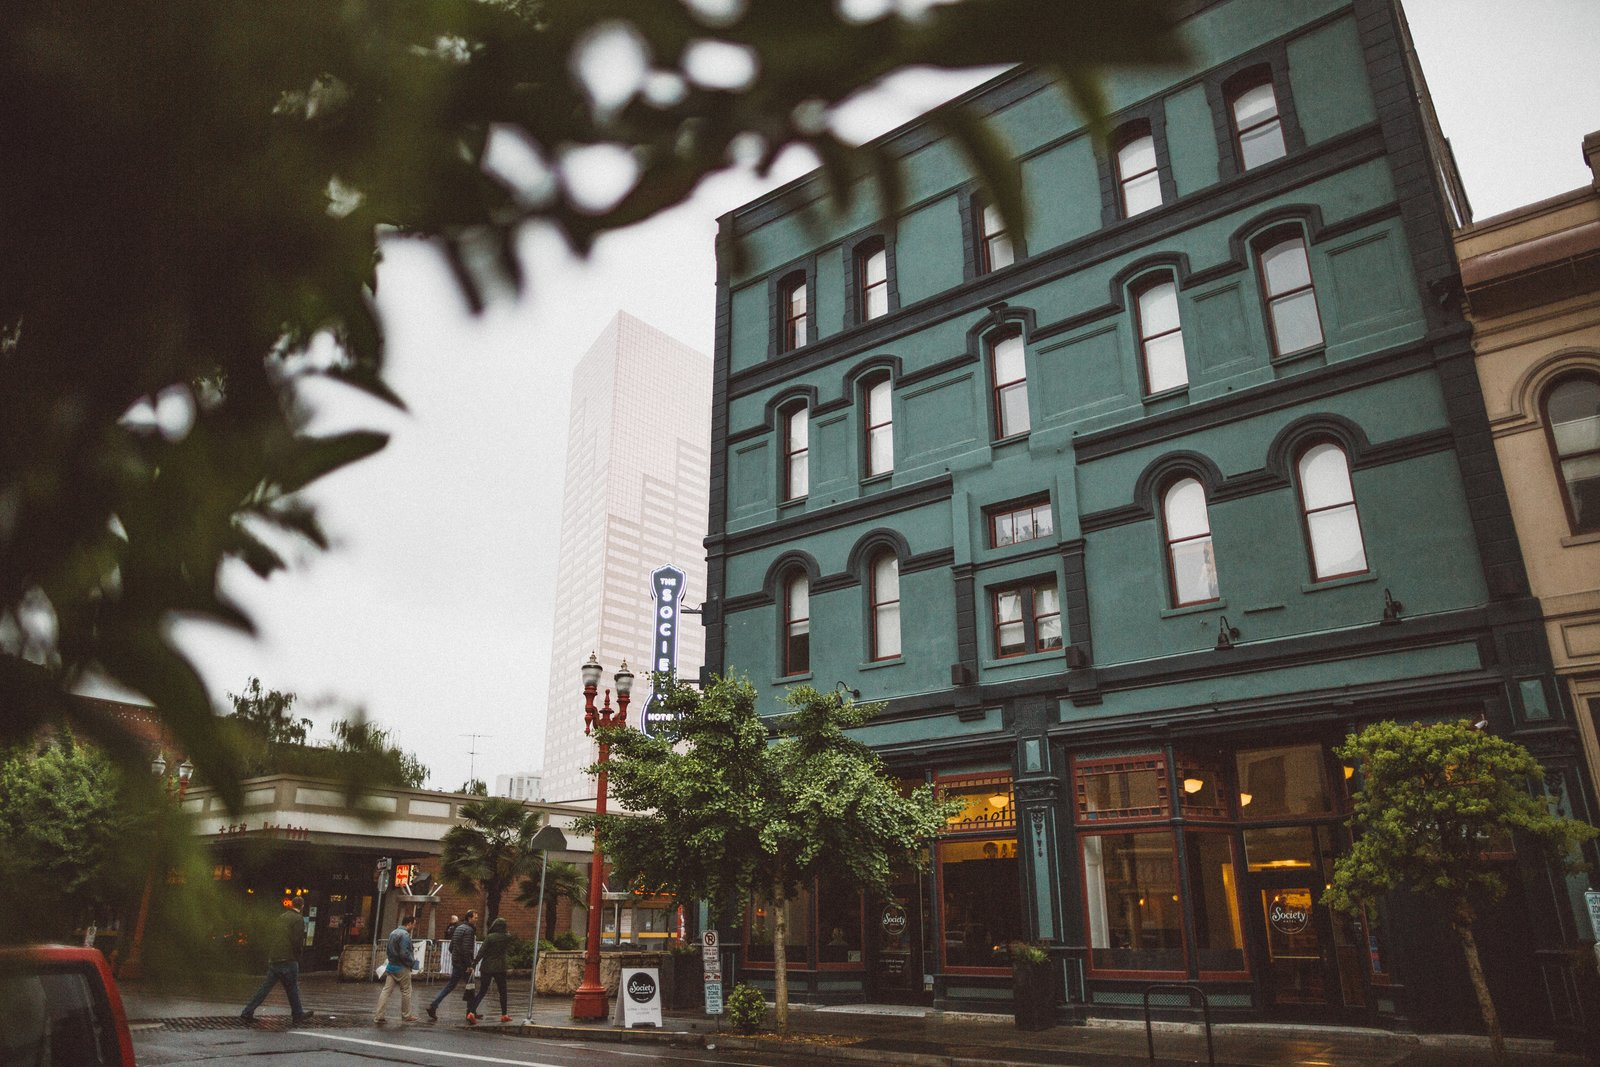 Photo 1 of 11 in A Chic Portland Hotel Offers Lodging As Affordable as $35 a Night